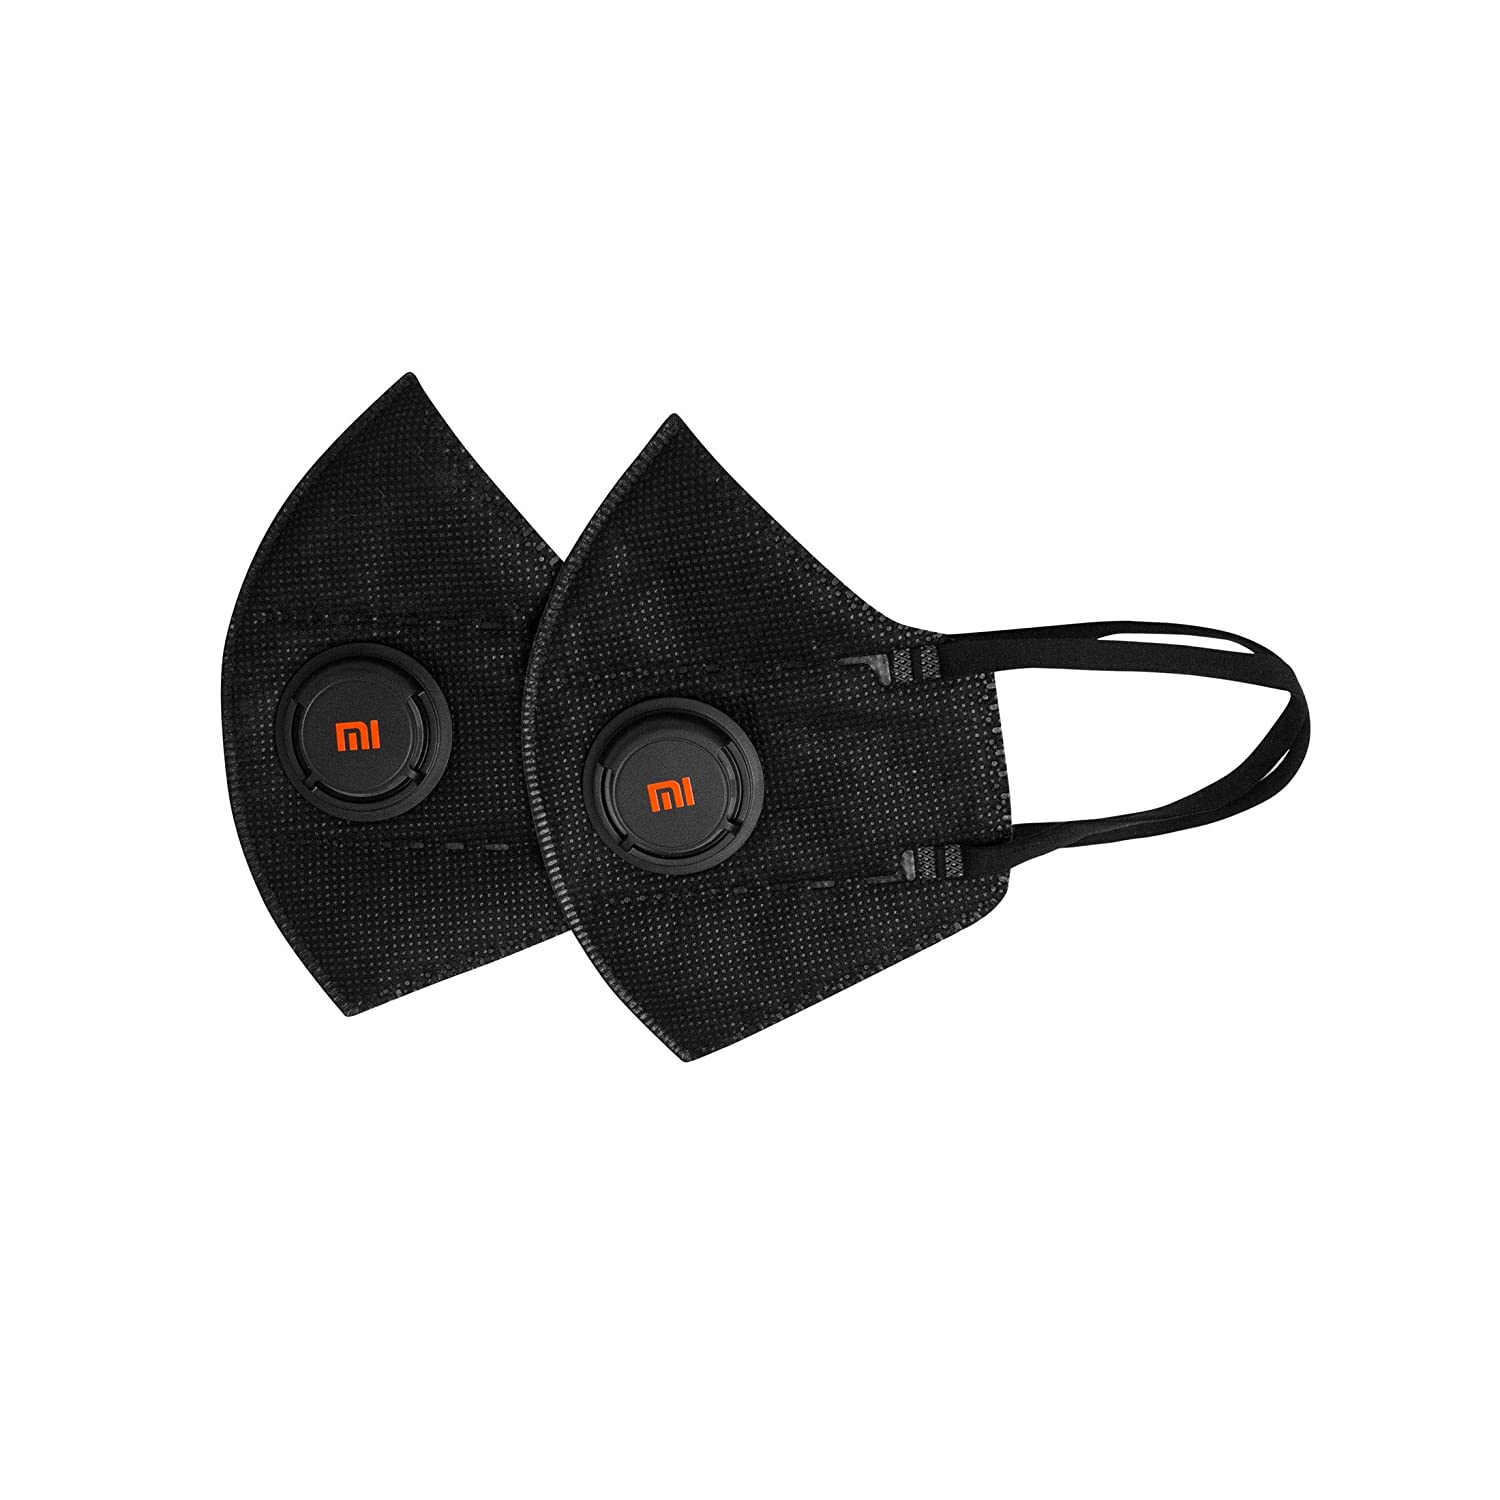 Mi AirPOP PM2.5 Anti-Pollution Mask (Pack of 2), 99% PM2.5 protection With 4 Layer Filtration and Advanced Air Circulation Vent